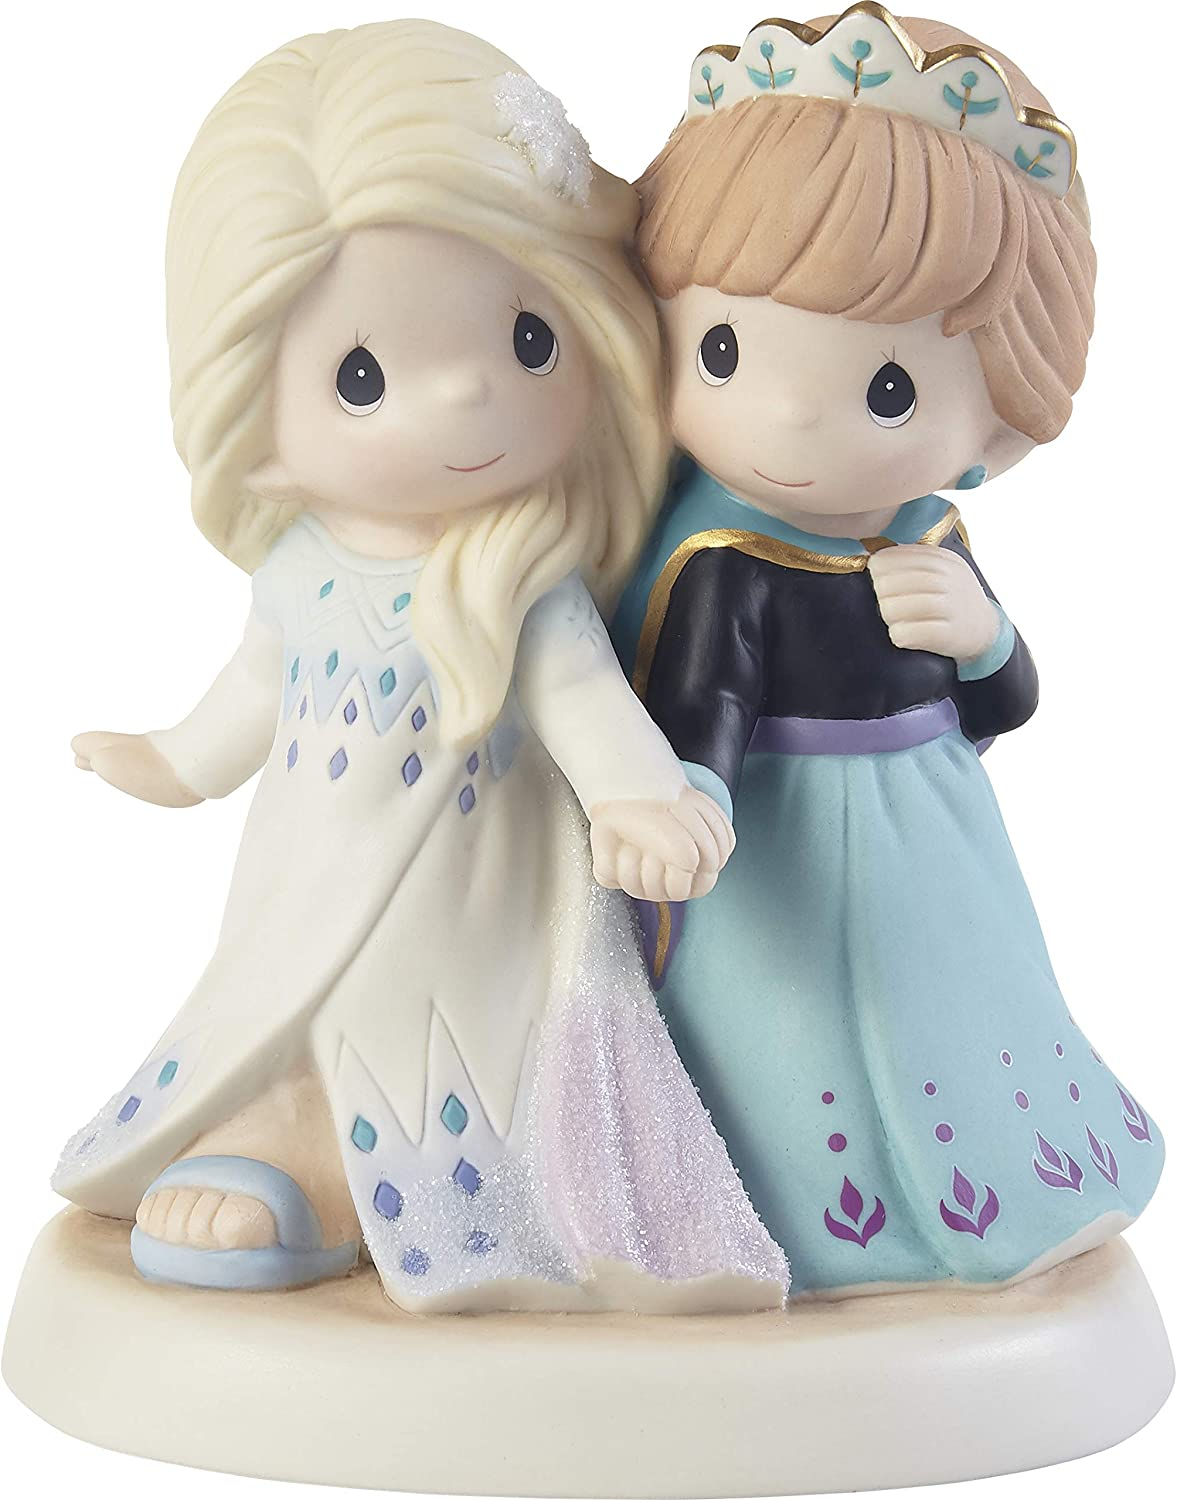 Precious Moments 203063 Disney Frozen Together We're Strong Bisque Porcelain Figurine